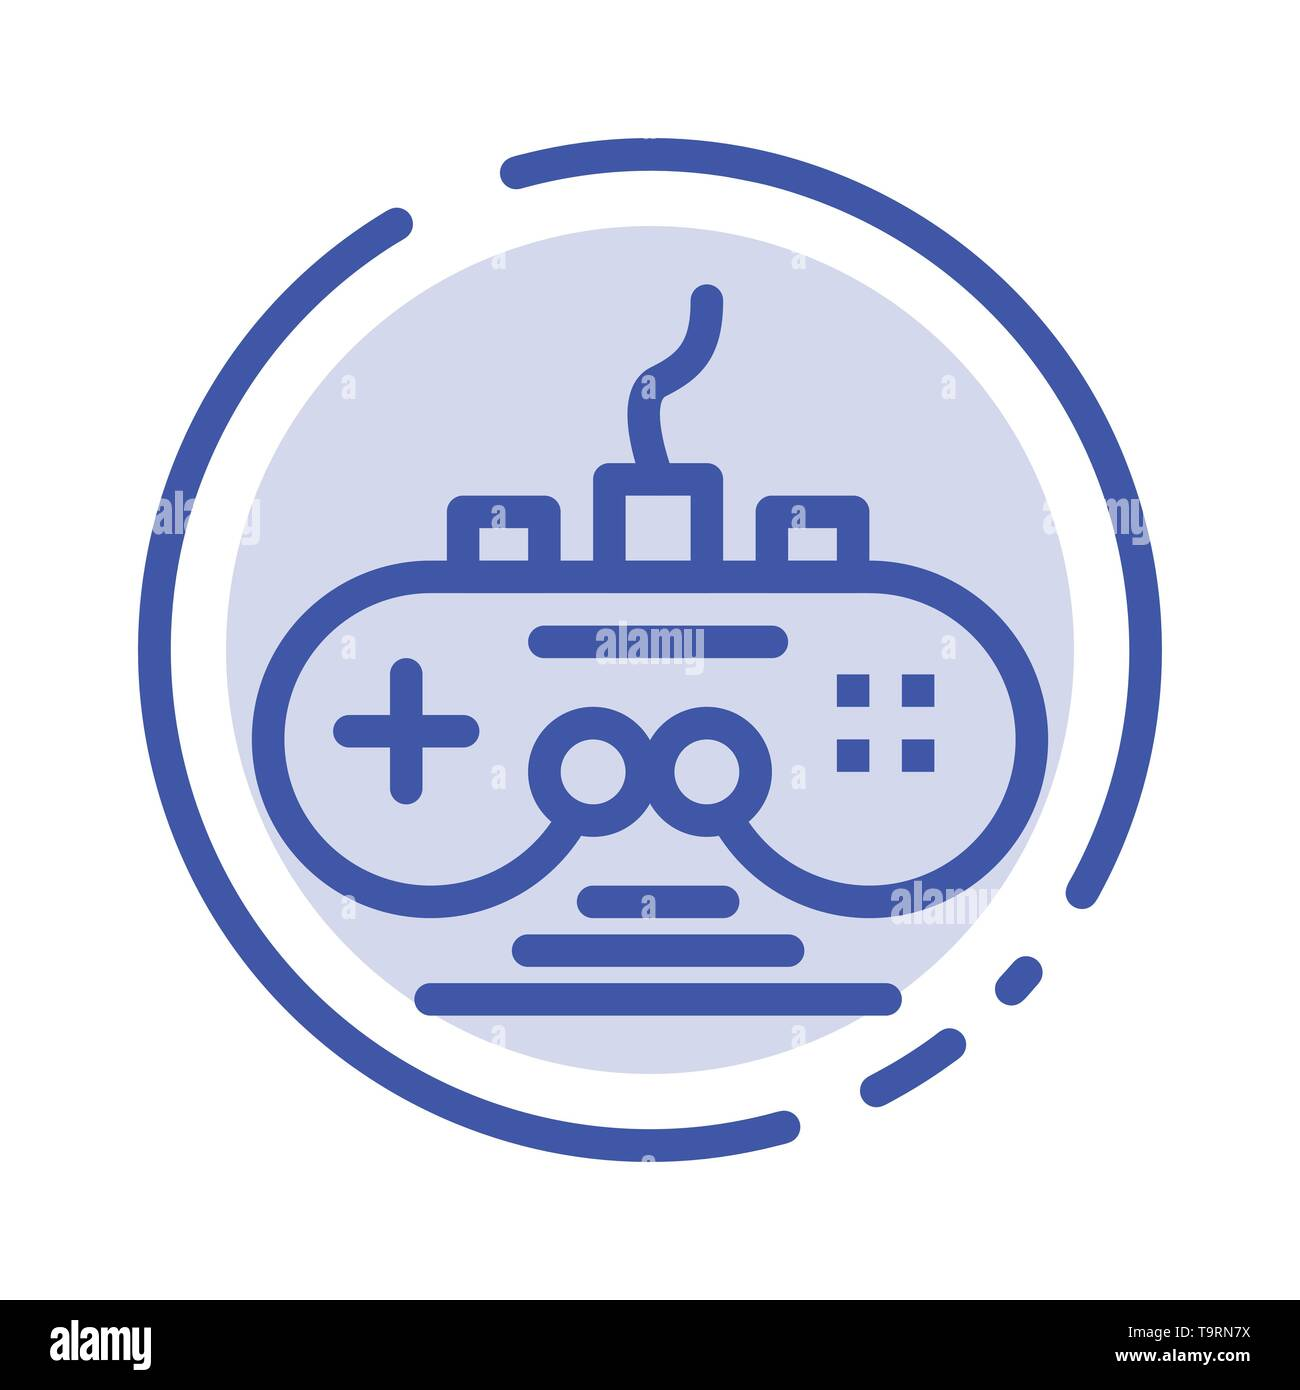 Controller, Game, Game Controller, Gamepad Blue Dotted Line Line Icon - Stock Image